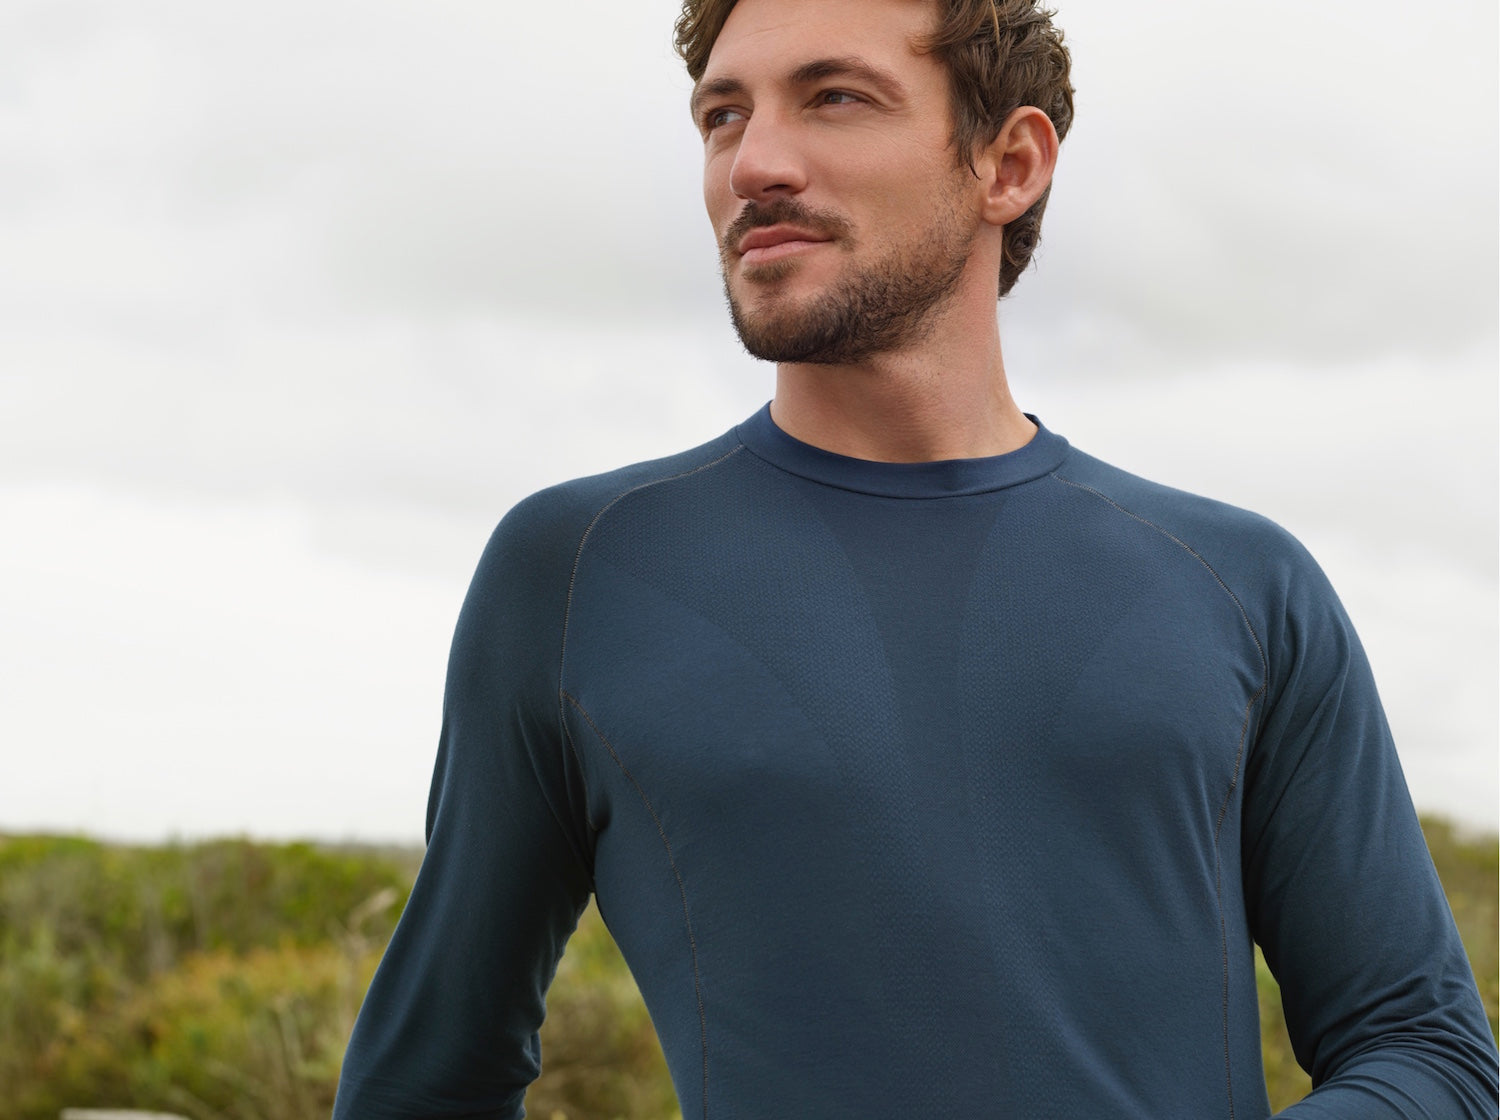 High performance sleepwear for men